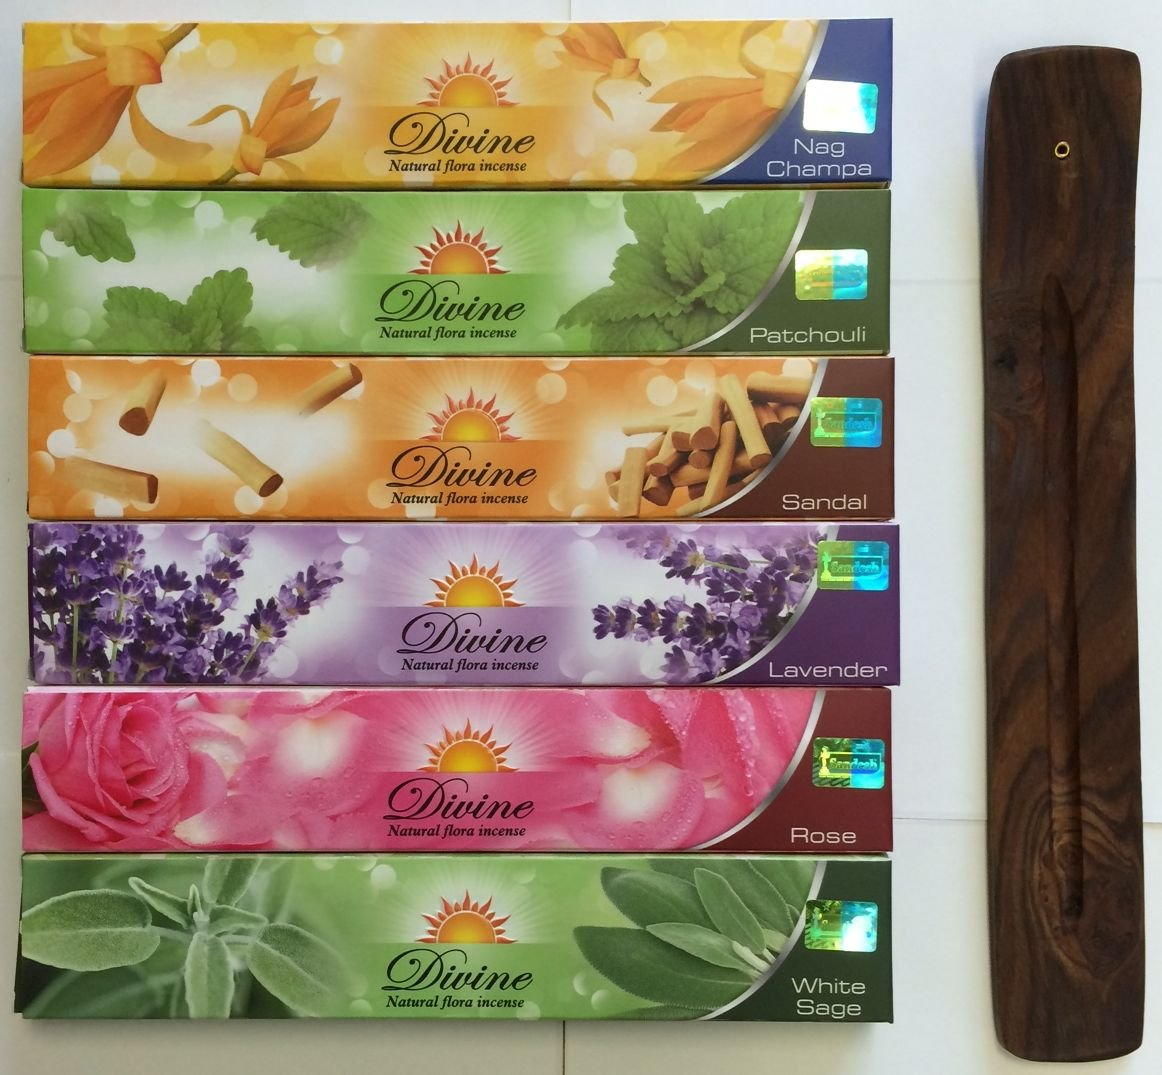 Valentine's Gift Set of 6 Nag Champa Sandalwood Patchouli Rose Lavender and White Sage Incense Kit